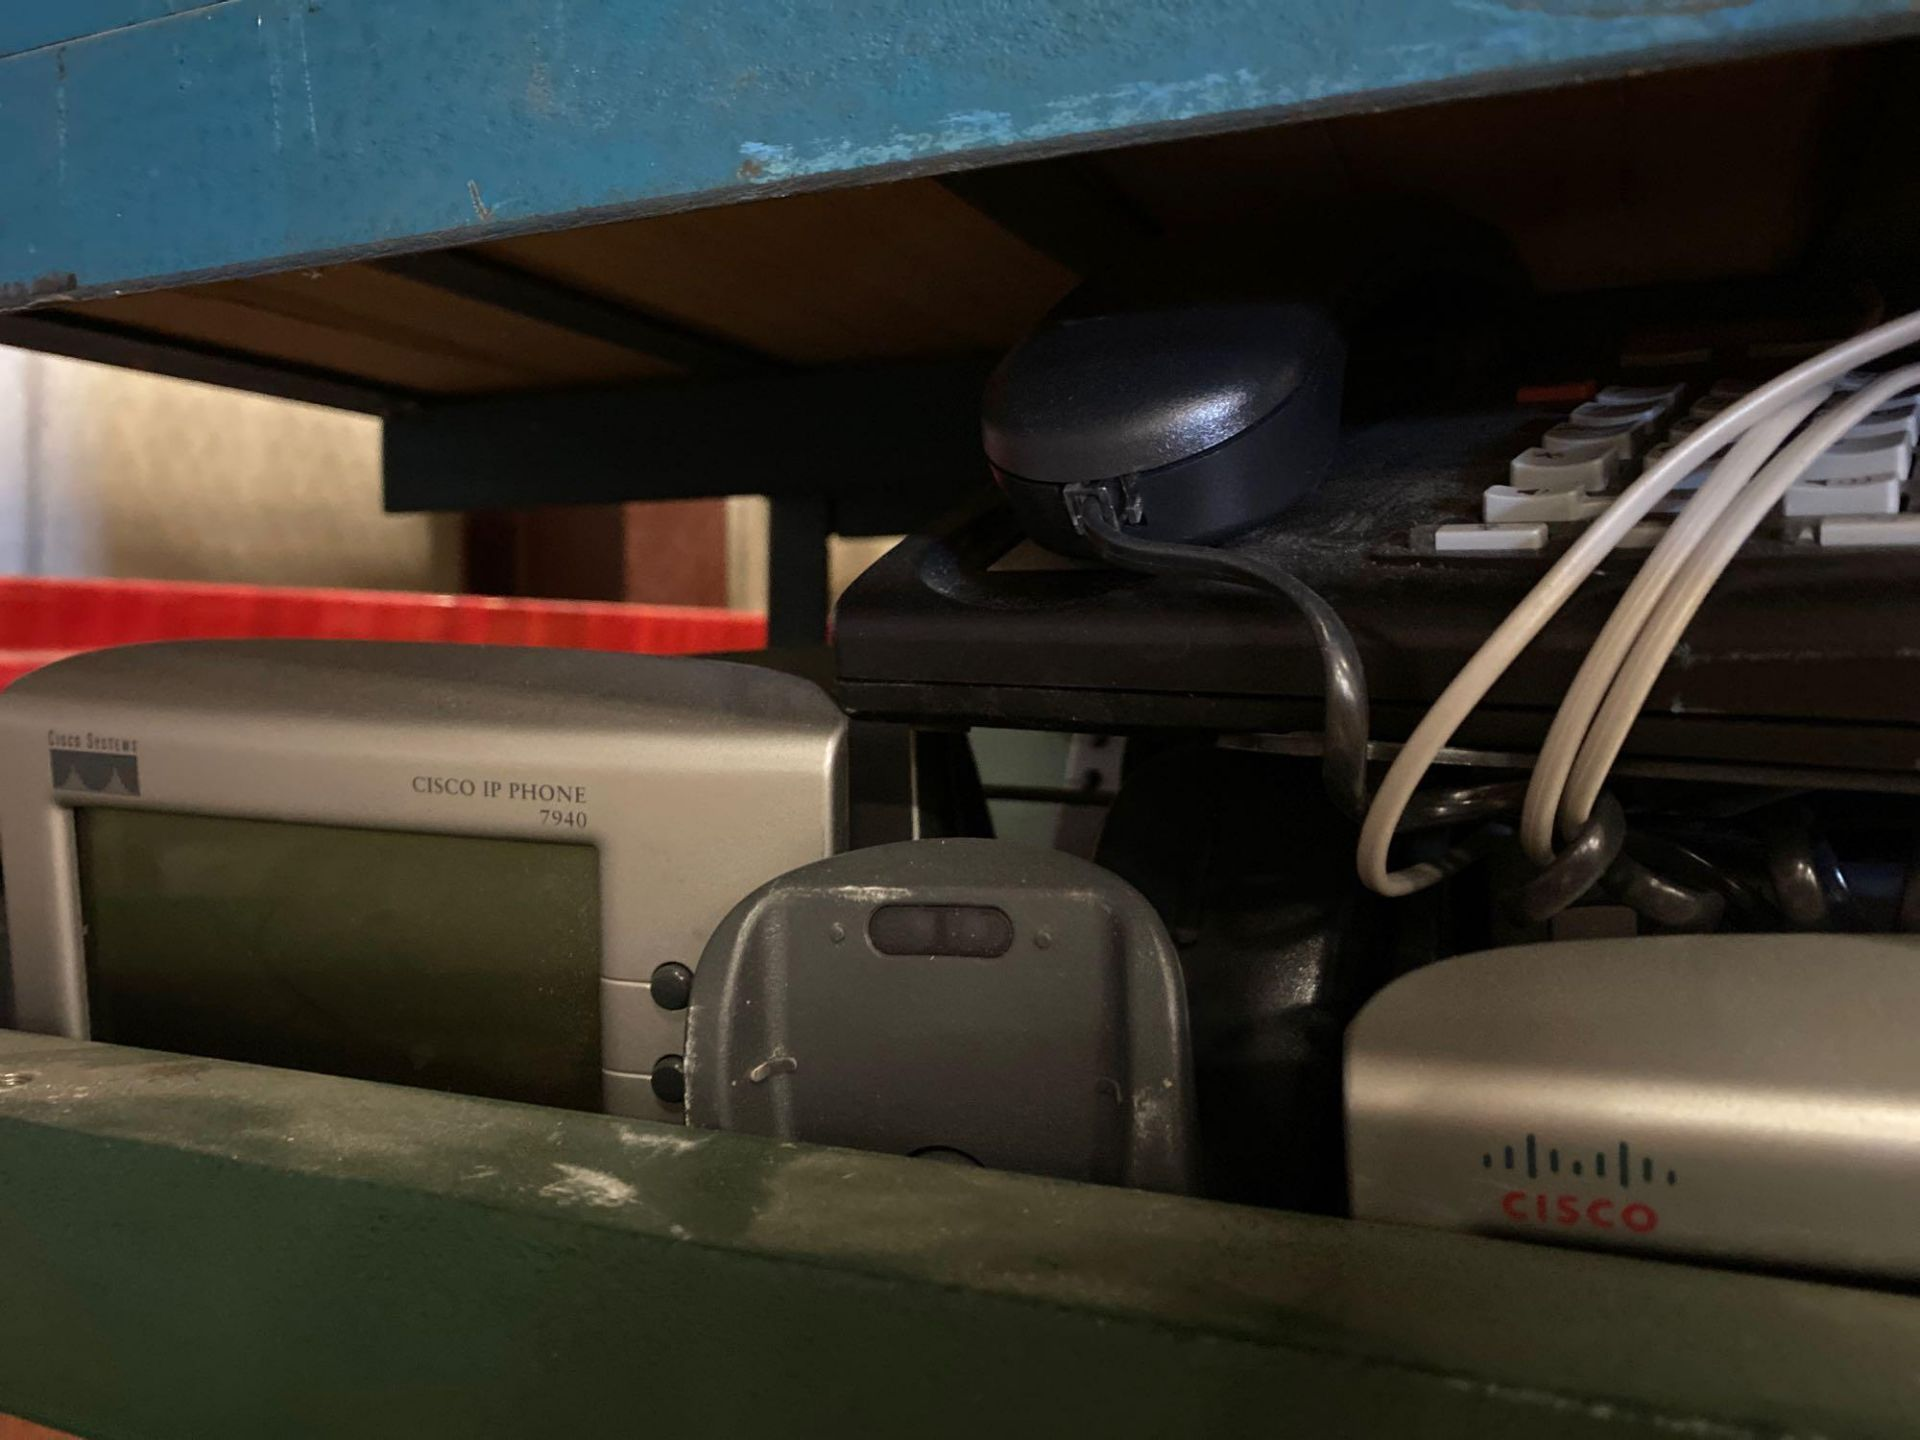 TWO CRATES OF CISCO IP PHONES - Image 5 of 6